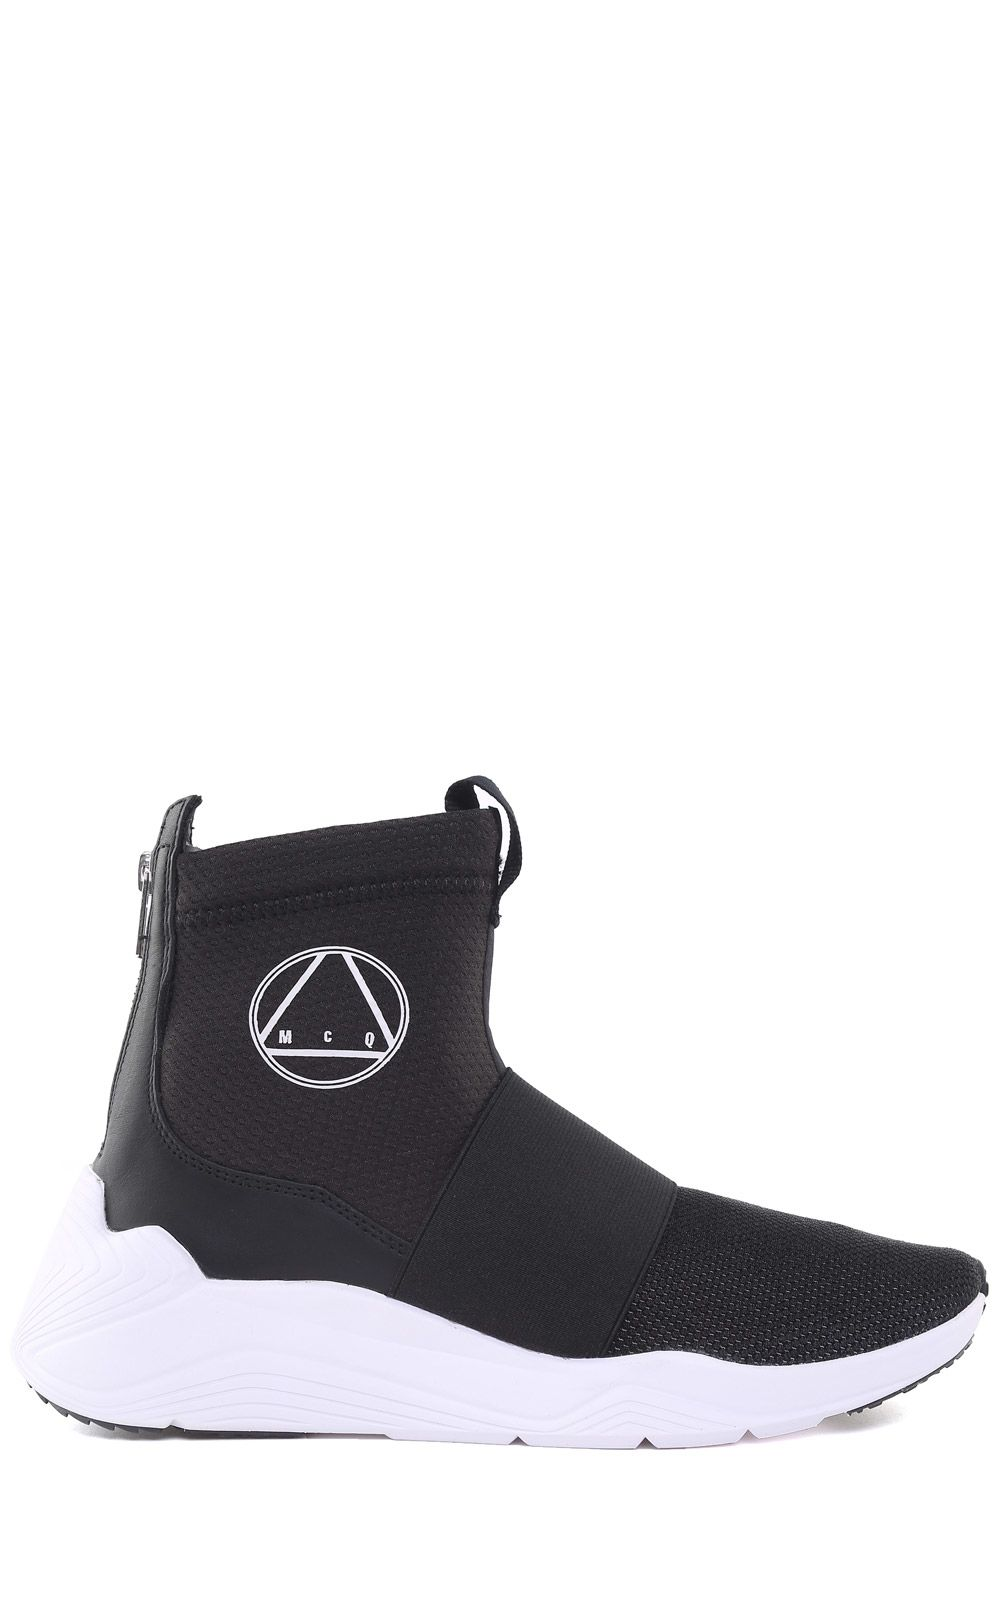 Mcq By Alexander Mcqueen HIGH SOCK HIKARU NEOPRENE AND STRETCH-KNIT SNEAKERS